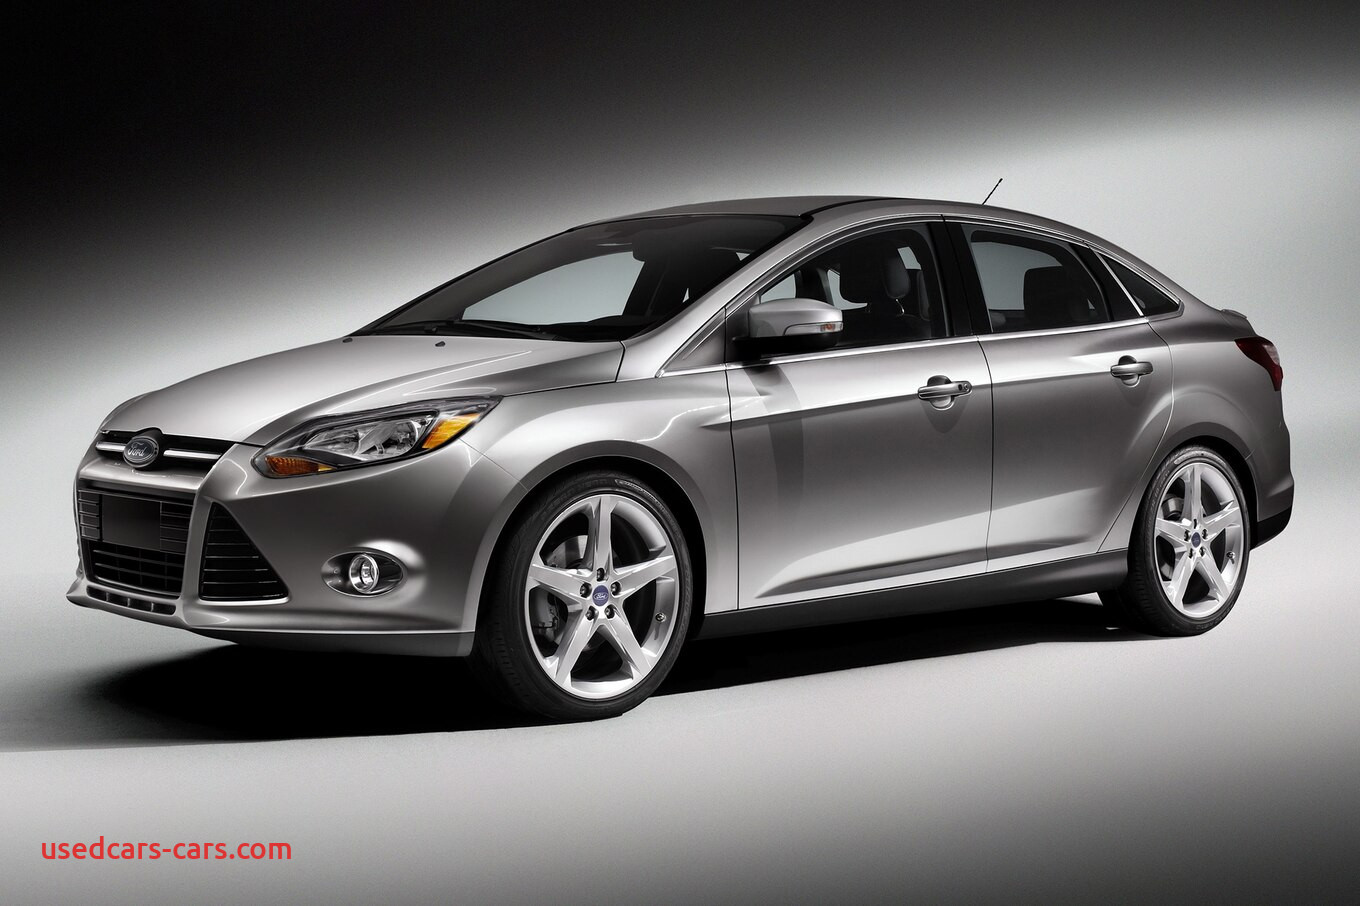 Ford Focus 2014 Lovely 2014 ford Focus Reviews and Rating Motor Trend